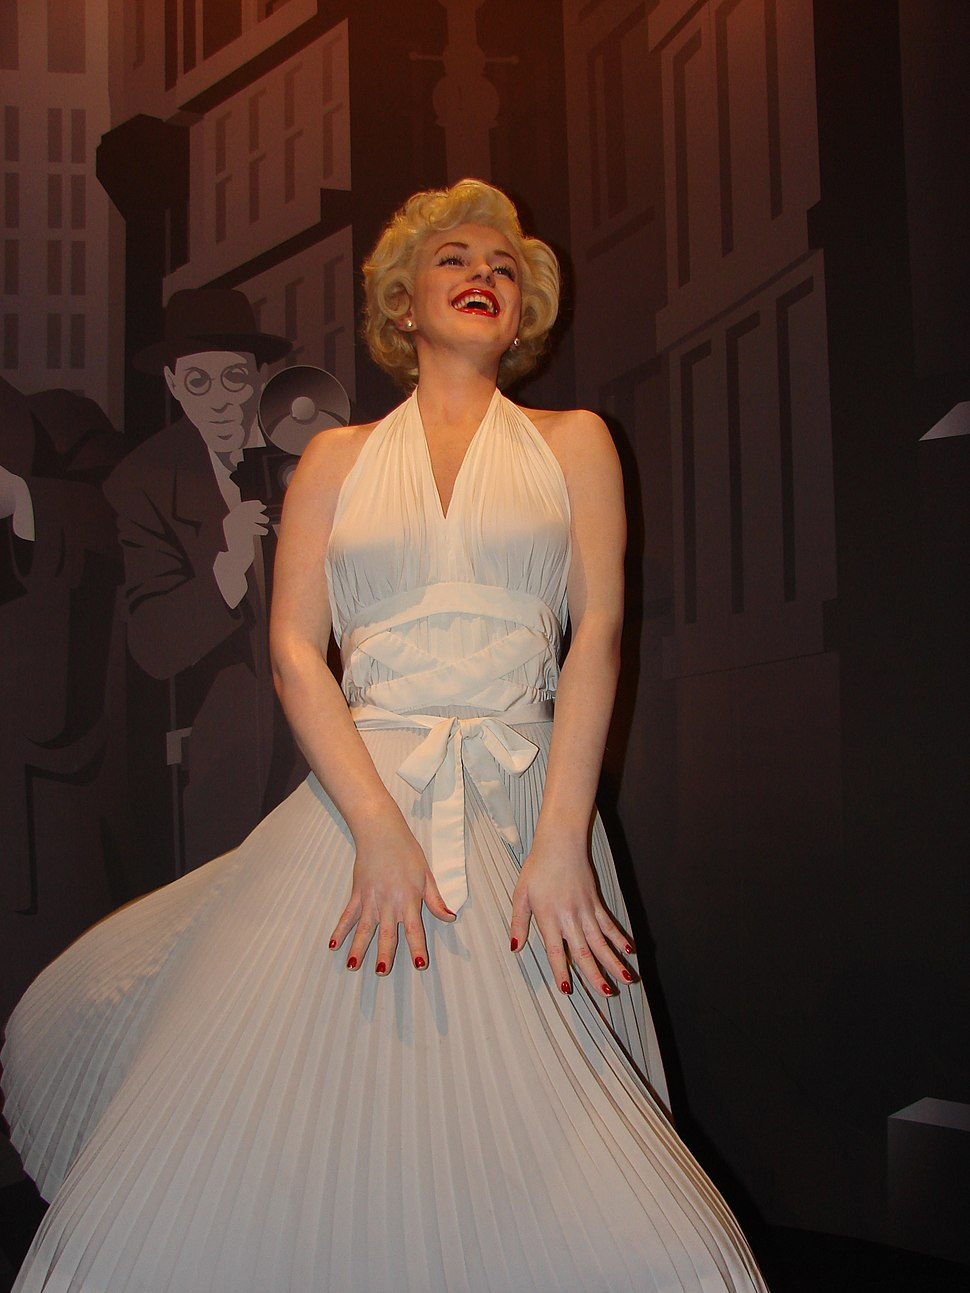 Marilyn Monroe Wax Statue in Madame Tussauds London